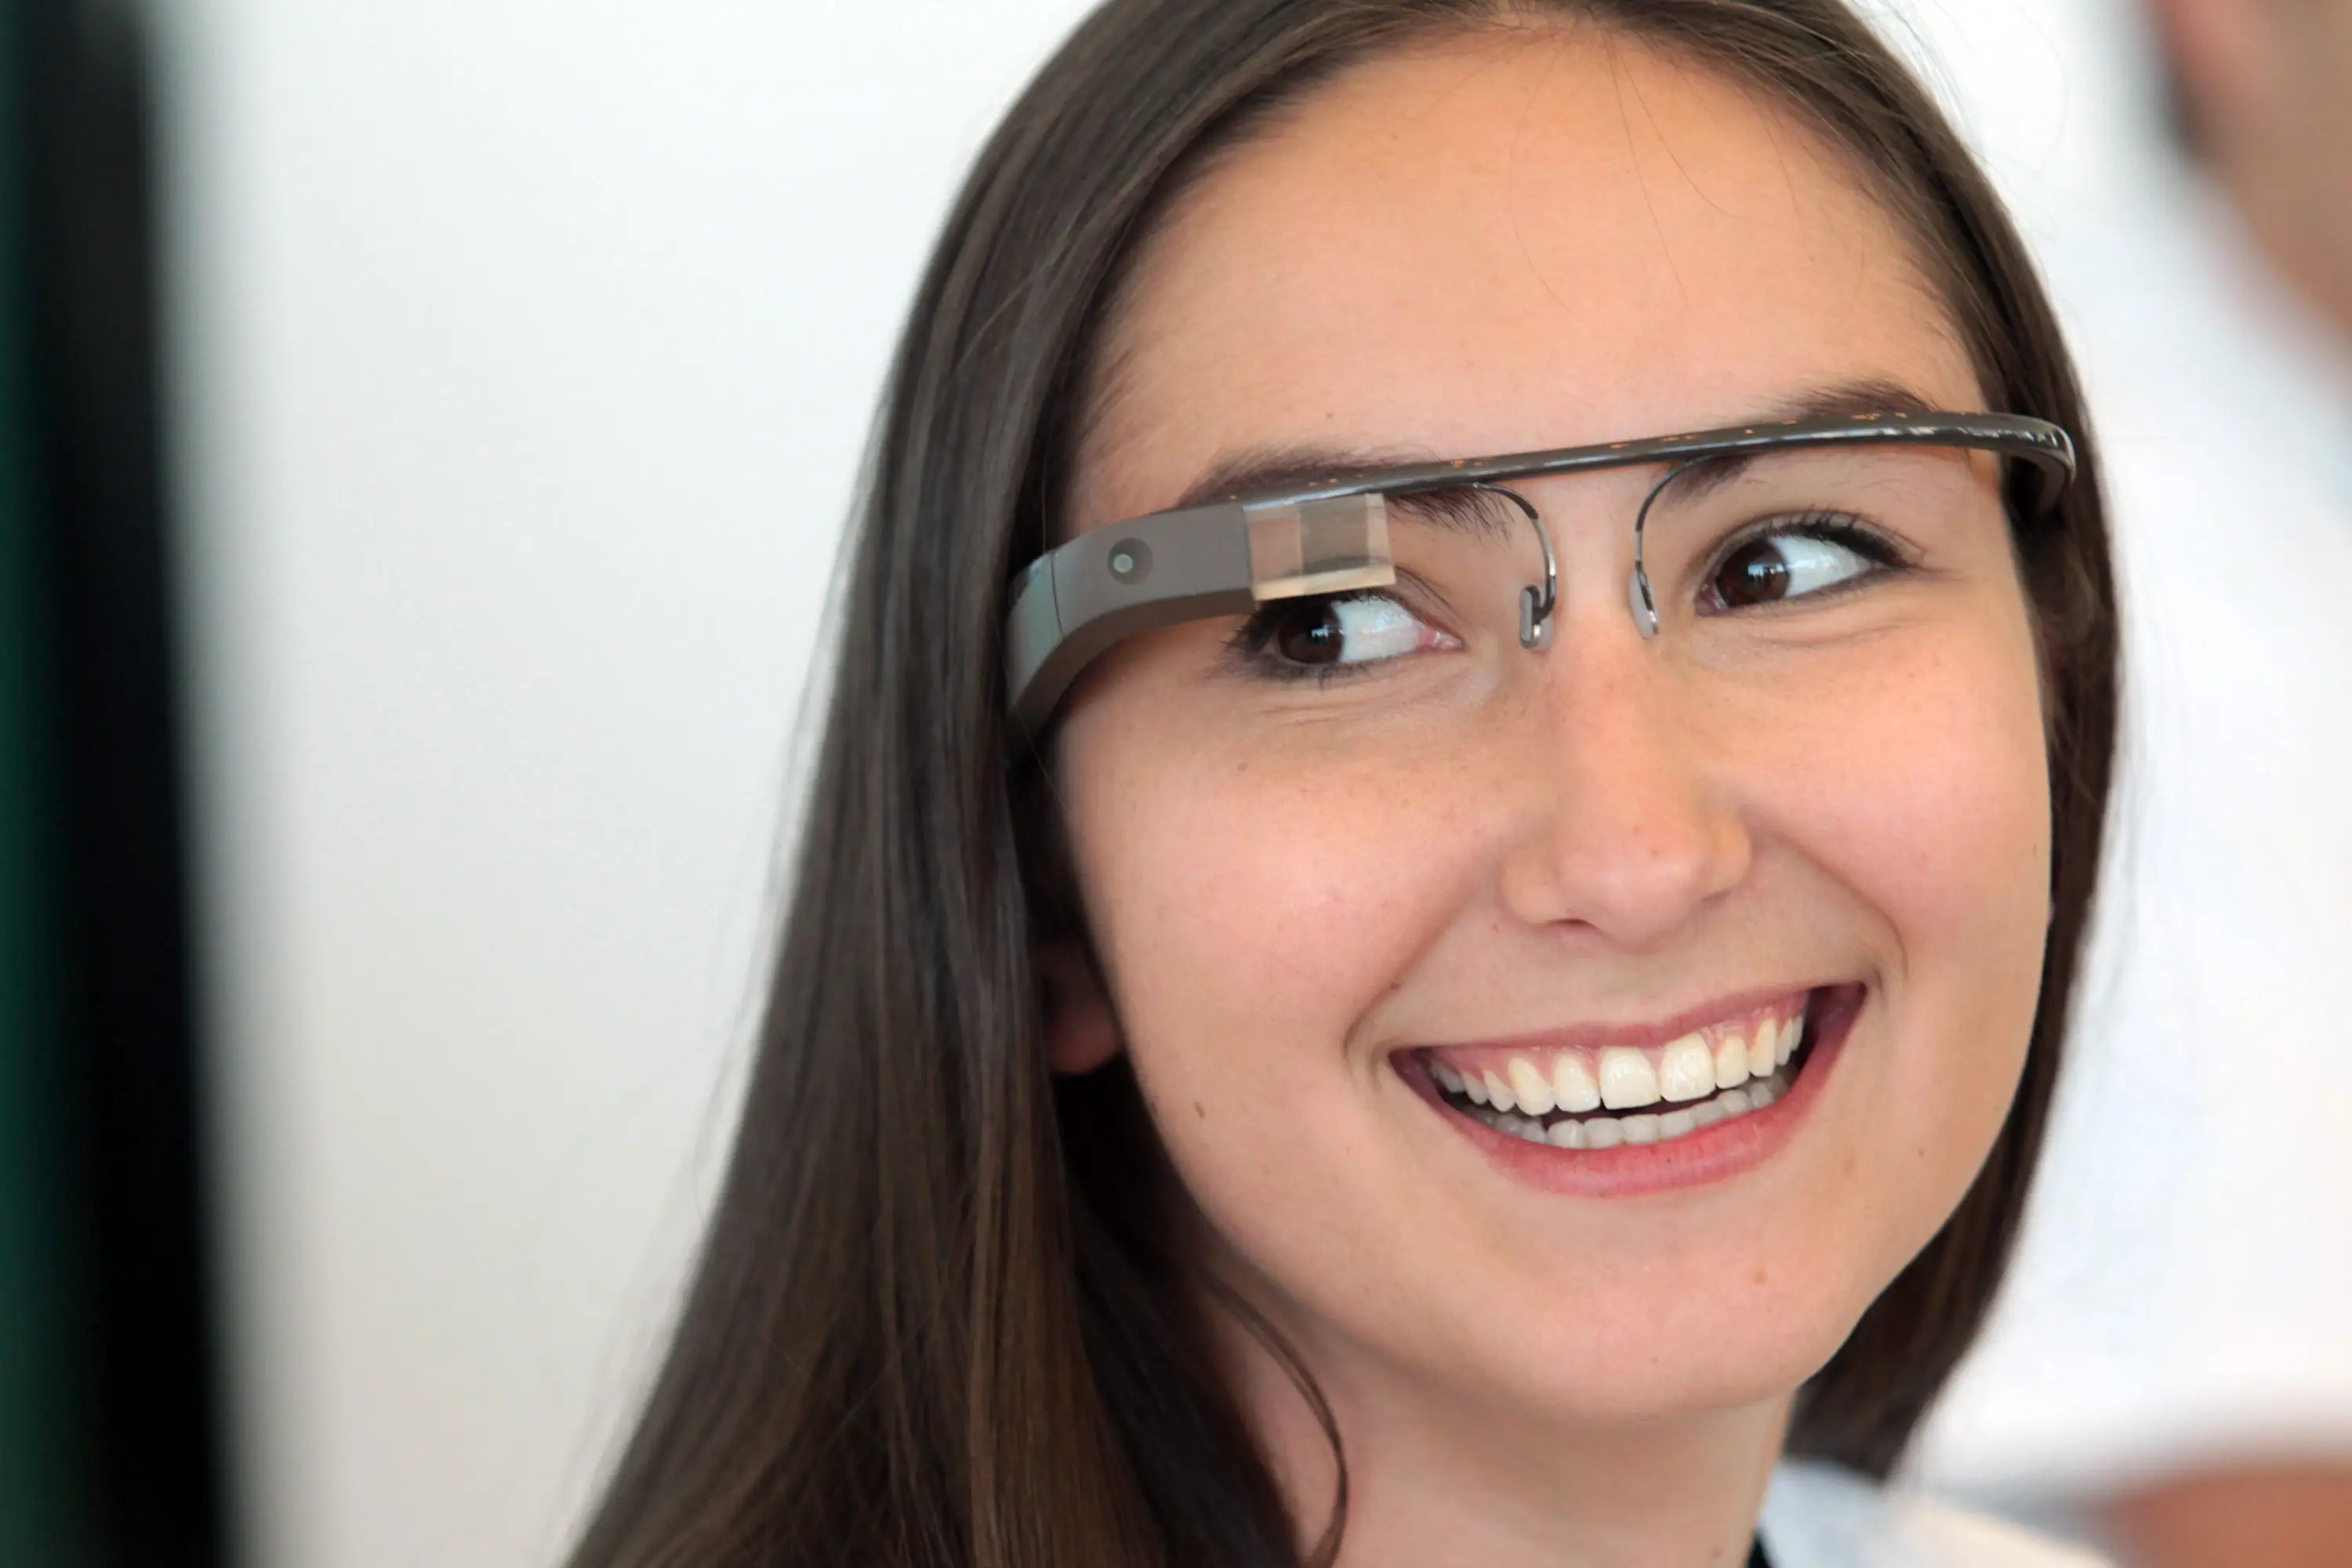 Google Glass is already changing how we interact with our smartphones.